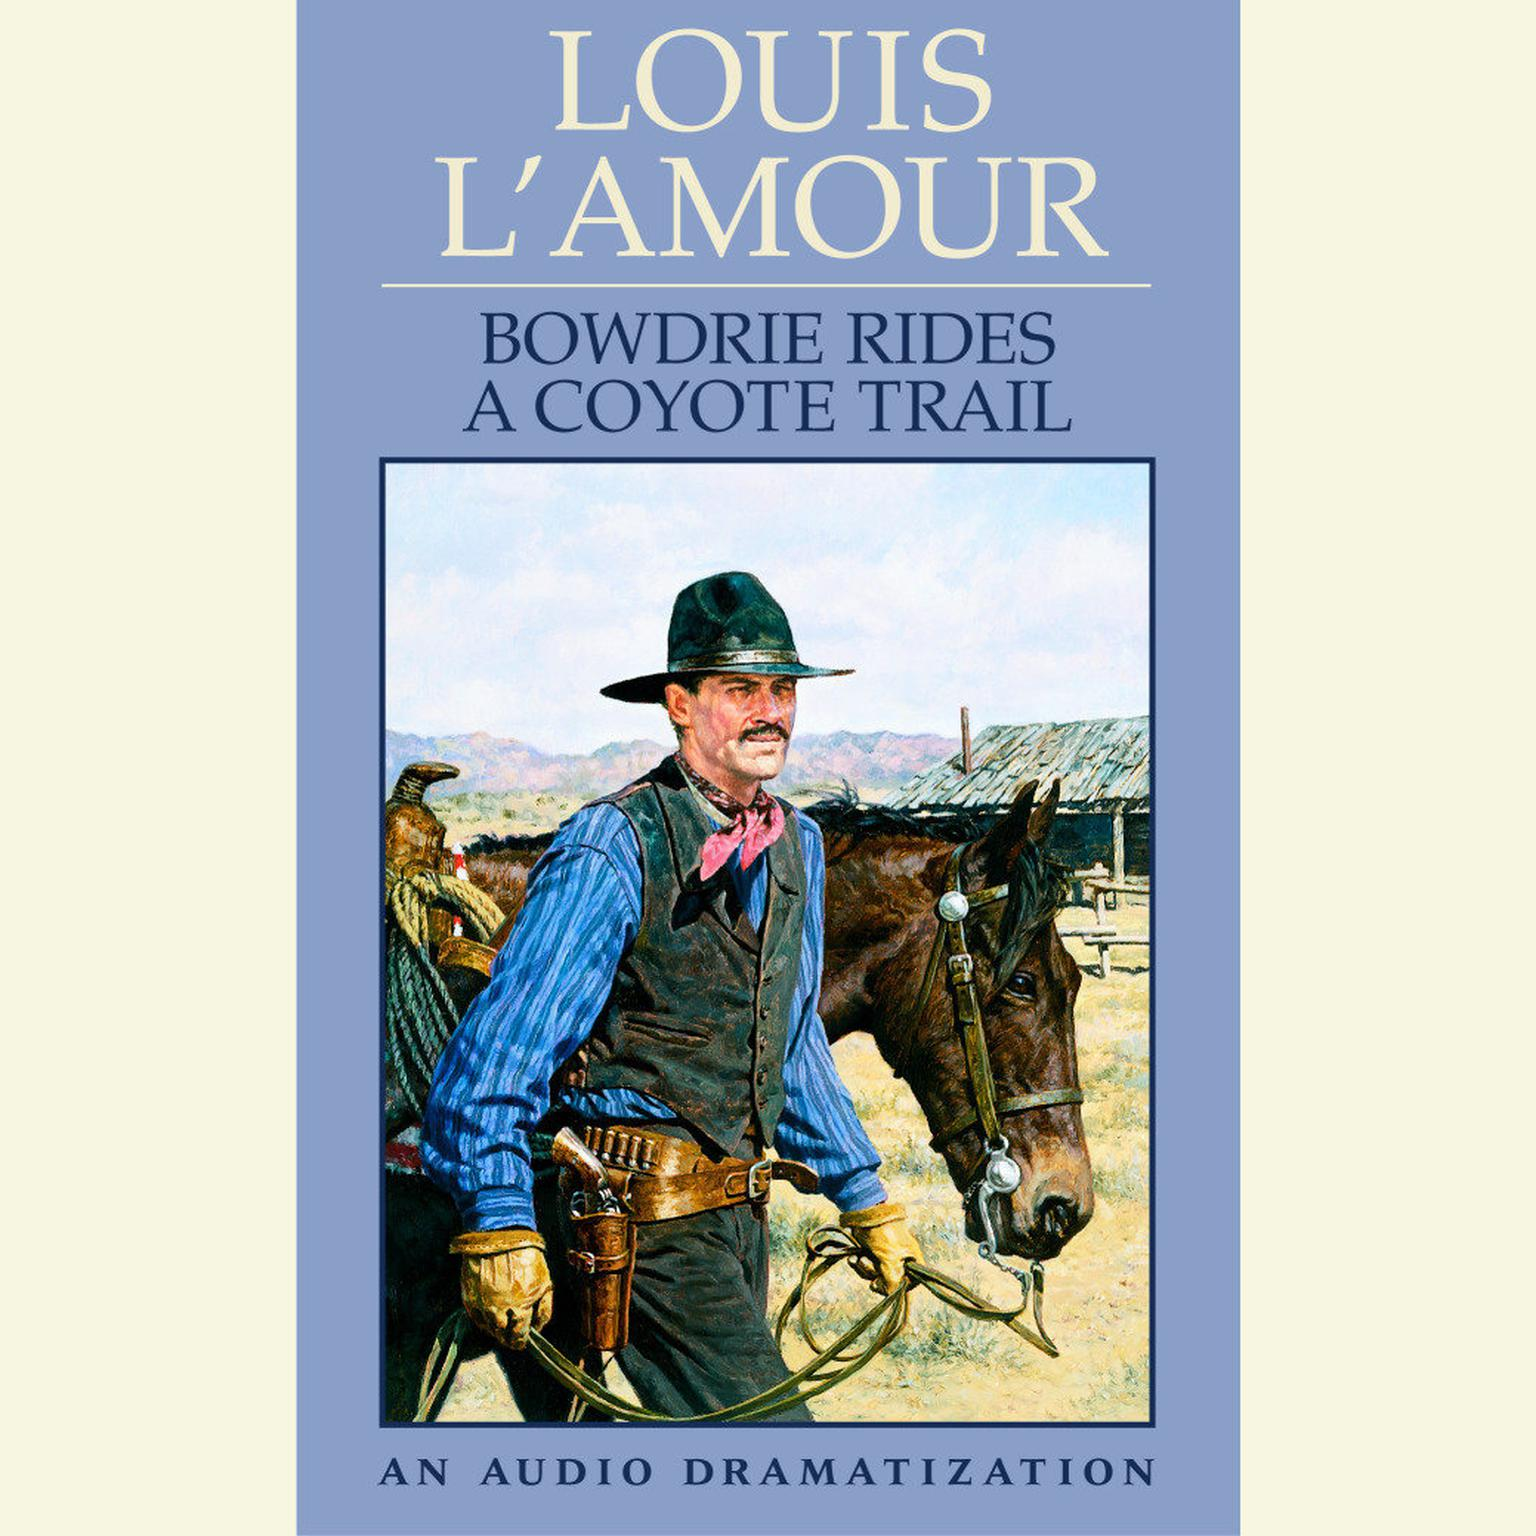 Bowdrie Rides a Coyote Trail (Abridged) Audiobook, by Louis L'Amour